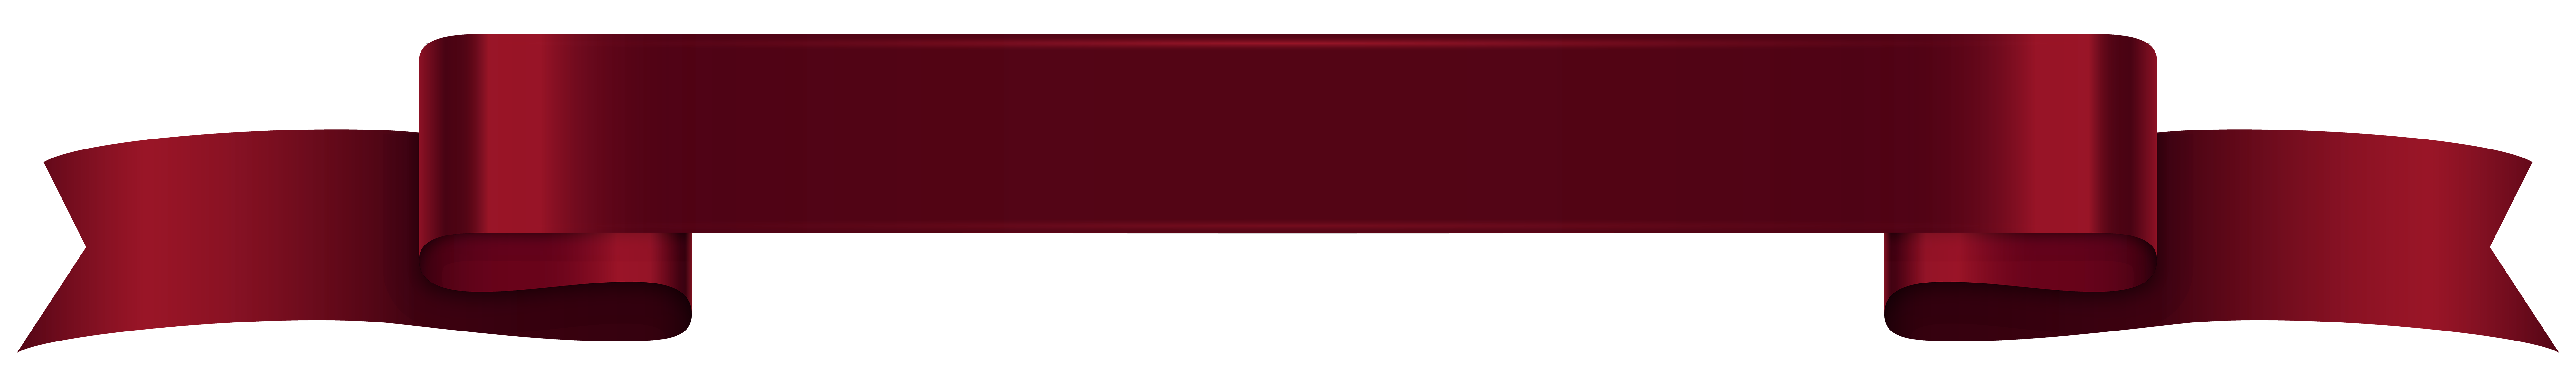 Maroon clipart banner Red Gallery size High Banner